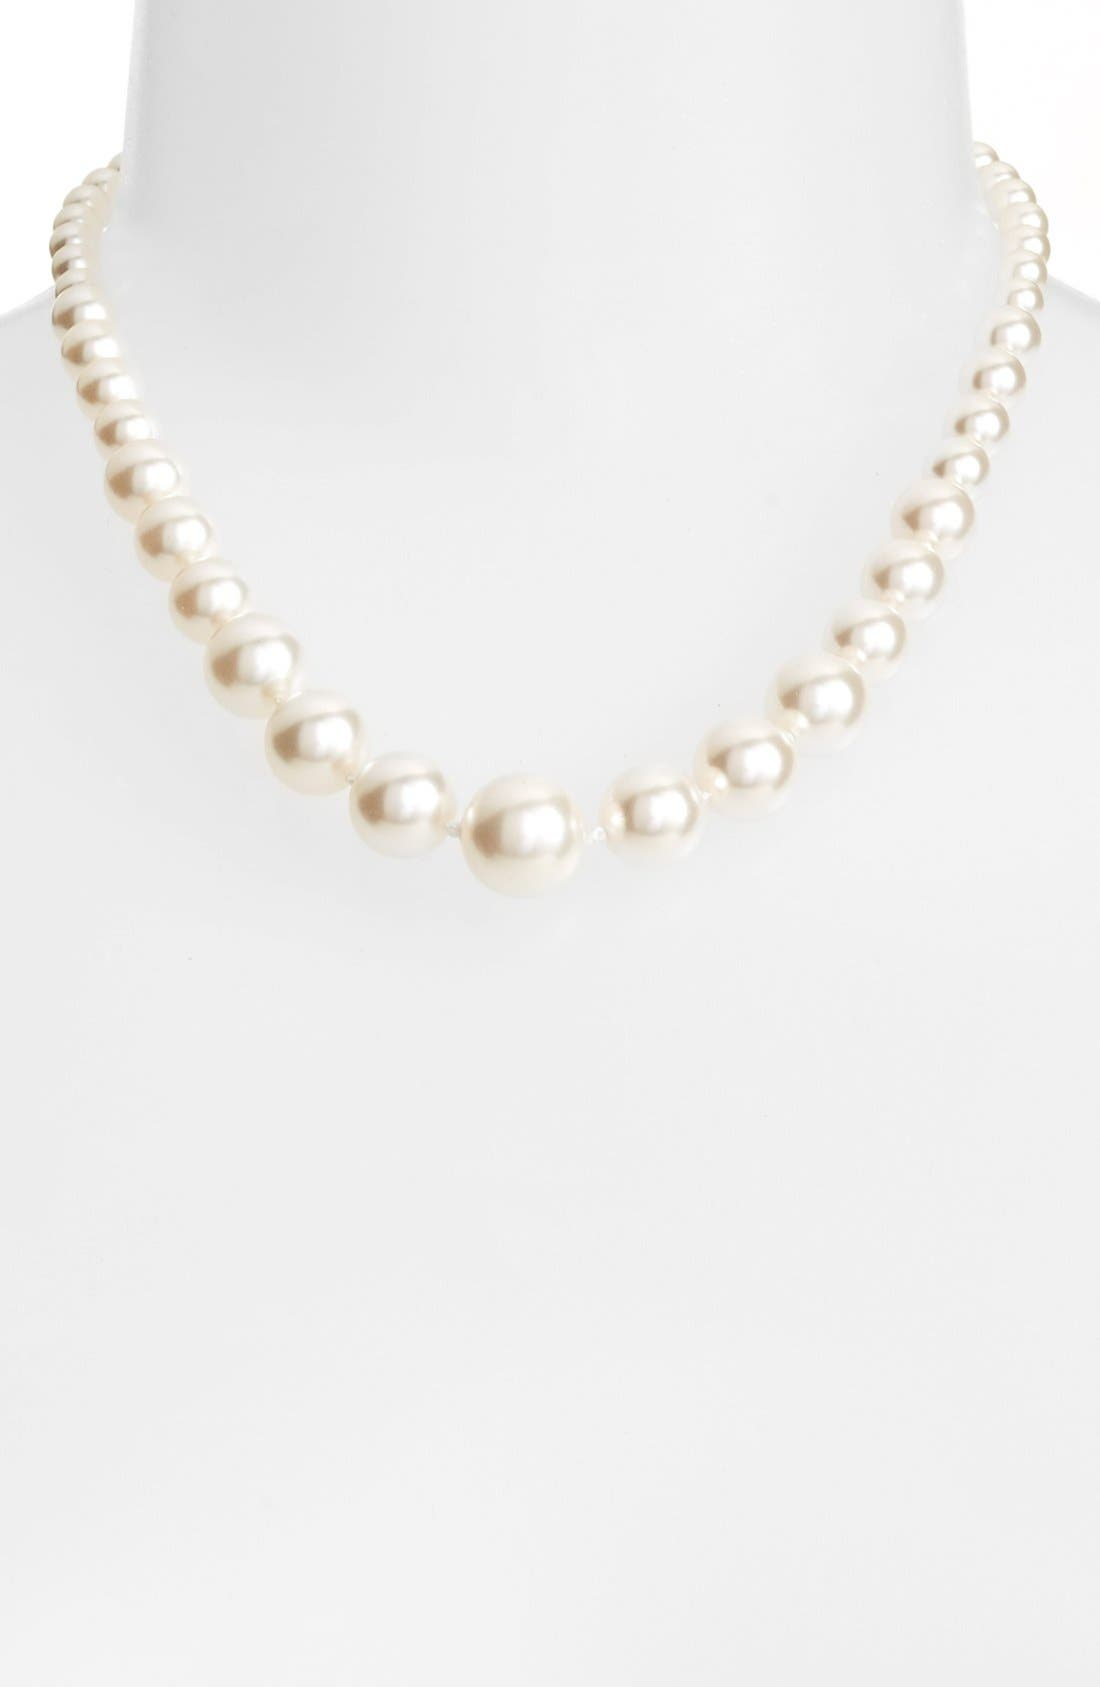 Graduated Imitation Pearl Necklace,                             Main thumbnail 1, color,                             IVORY